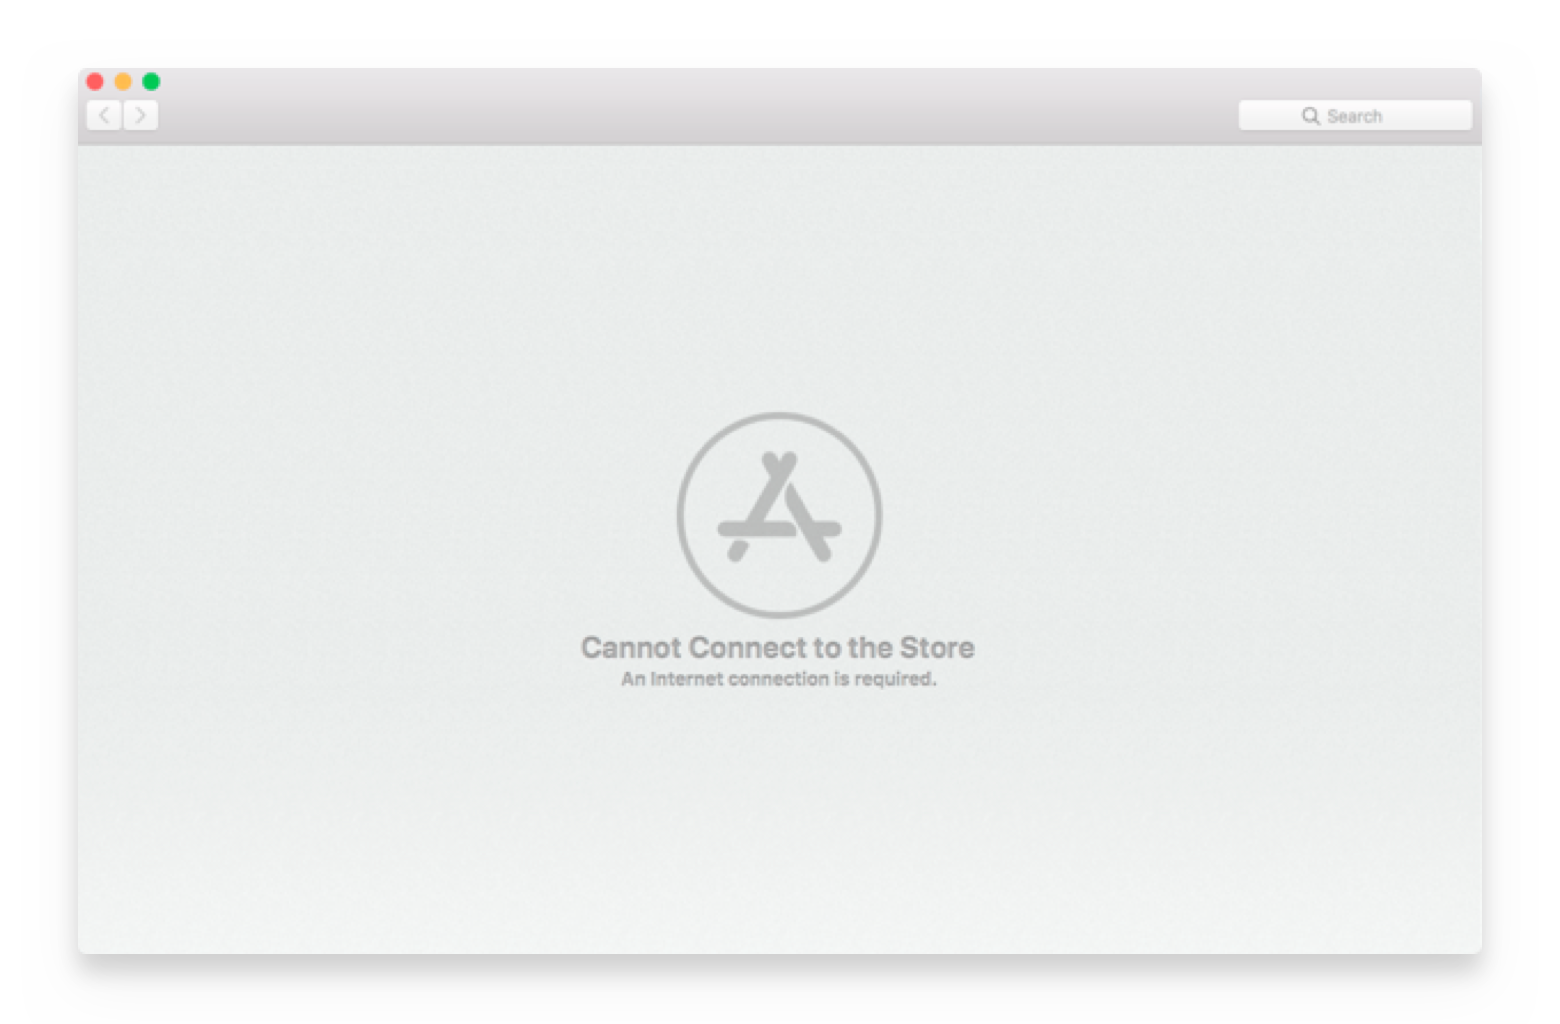 cannot connect to Mac App Store